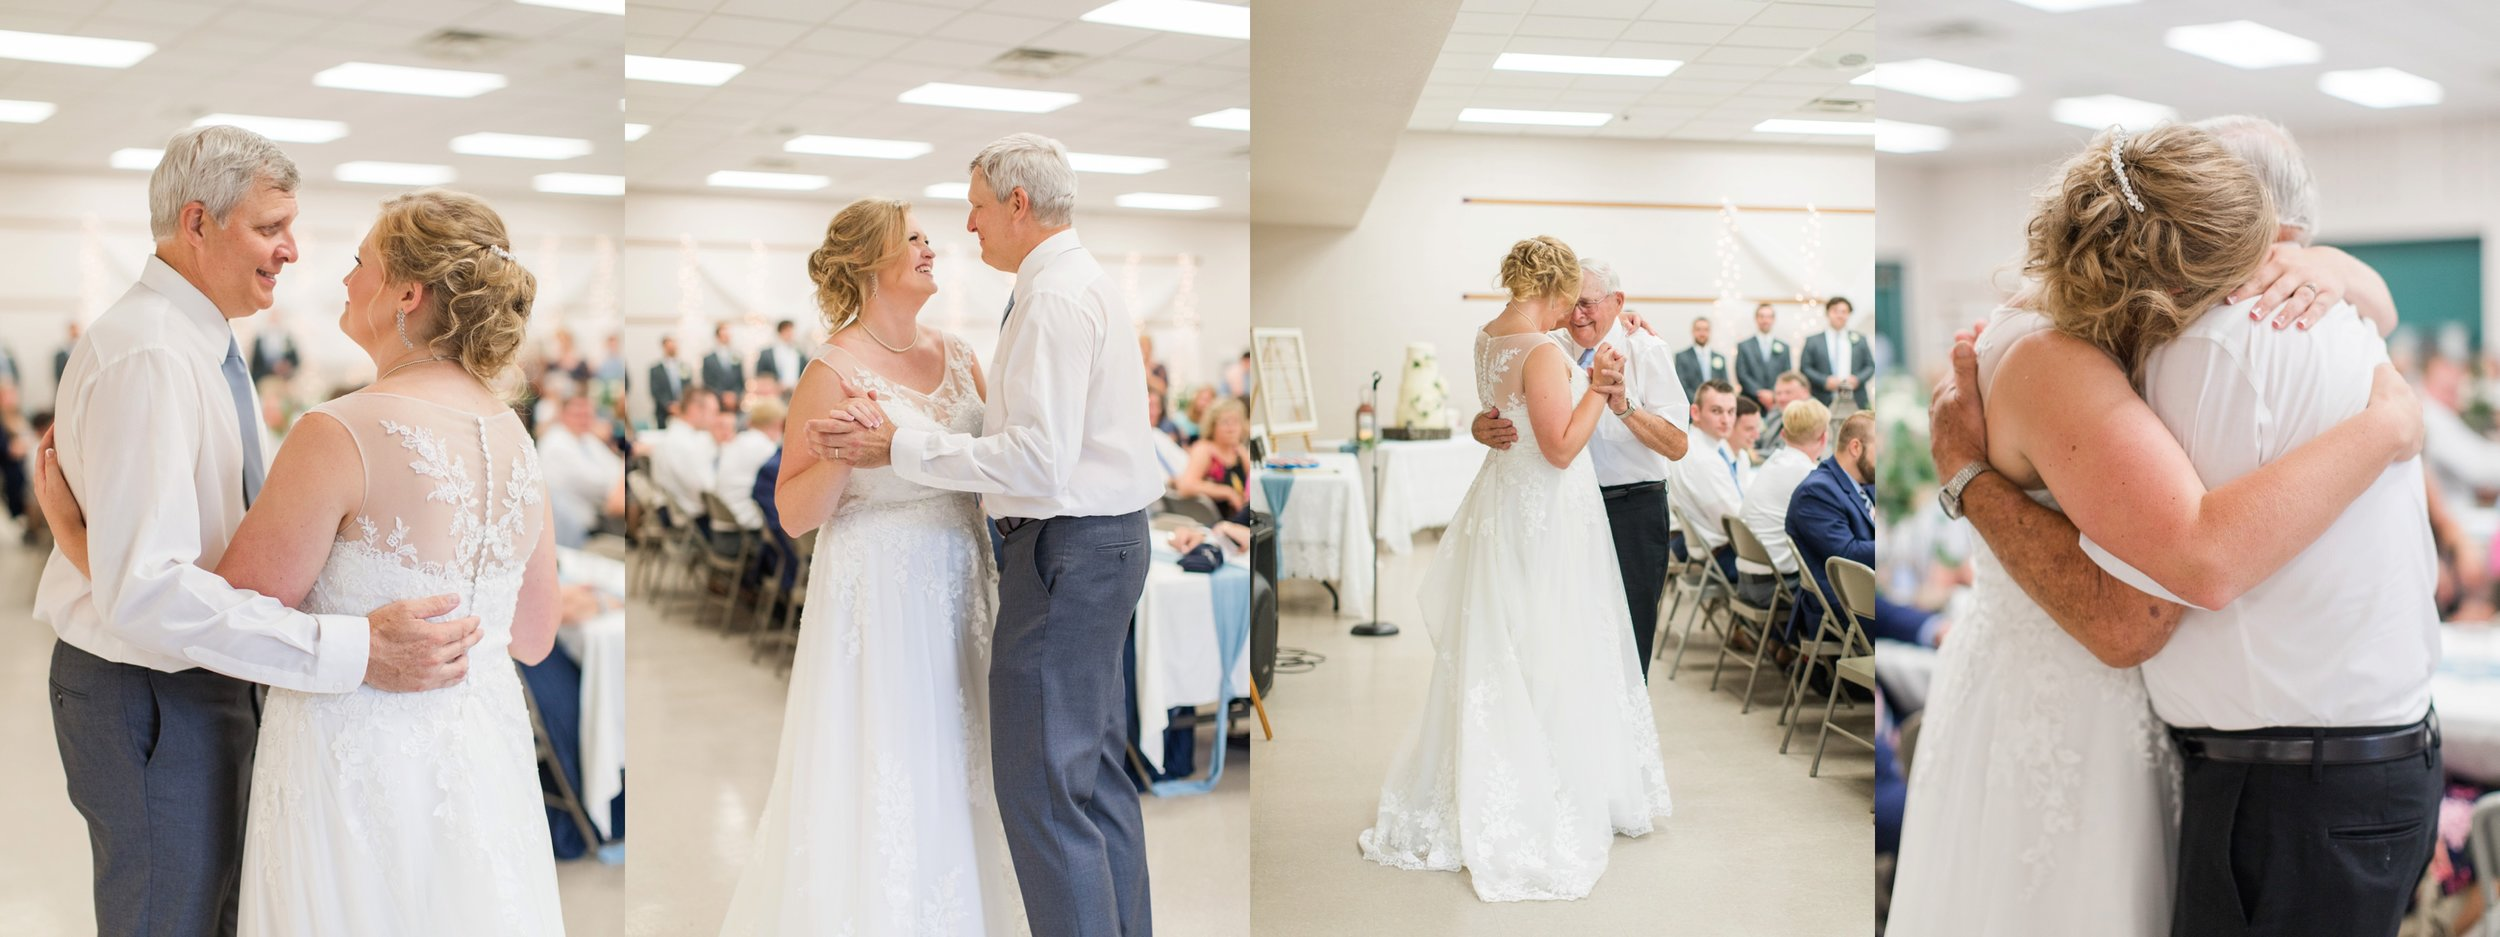 Daddy Daughter First Dance By: Jessica McBroom Photography